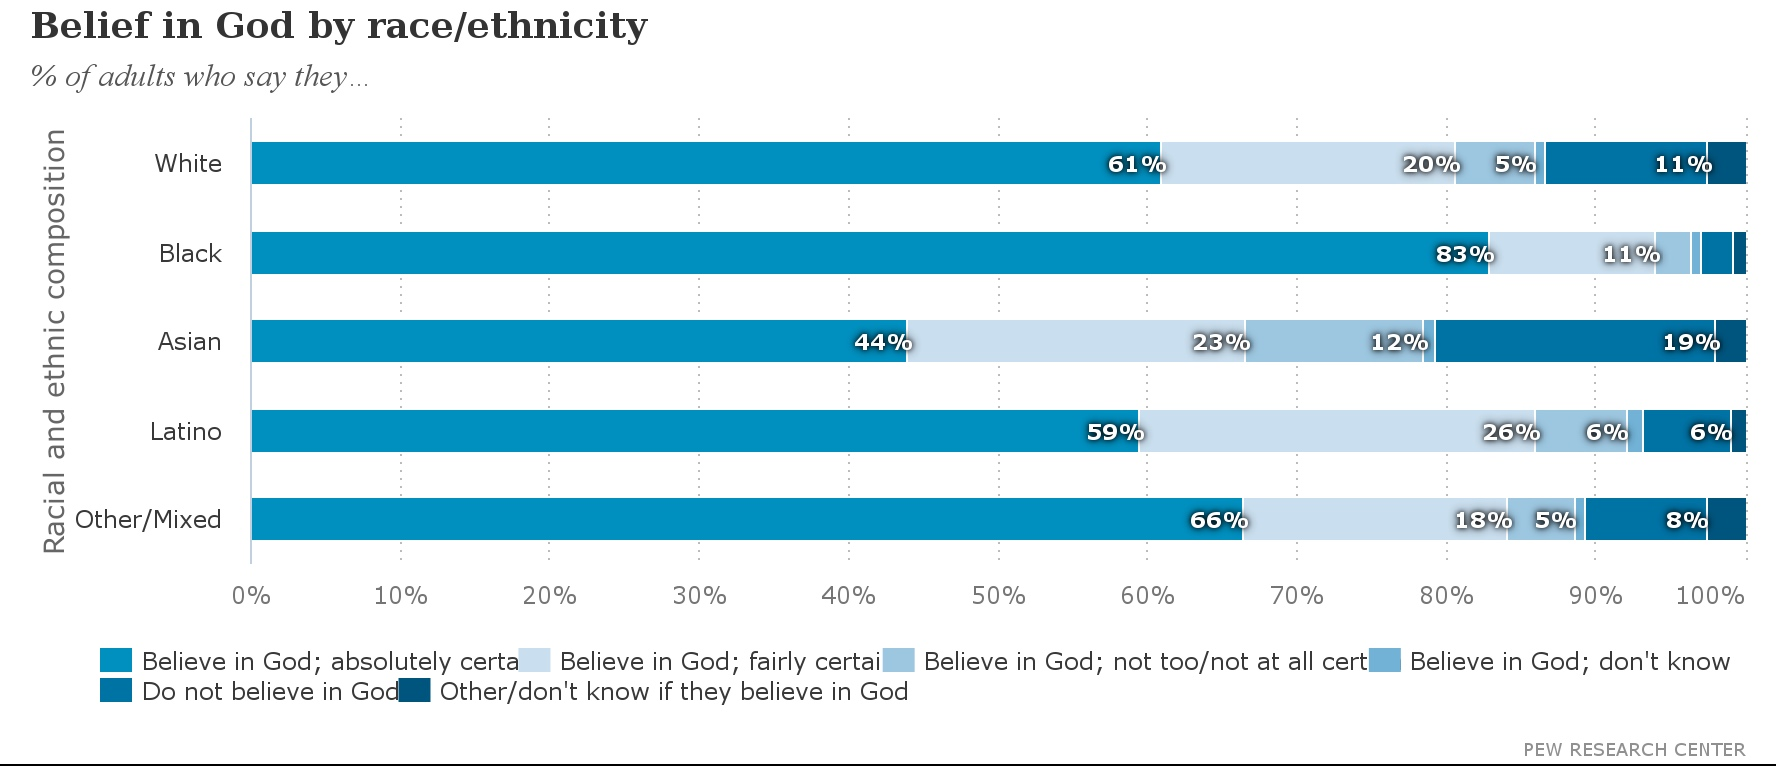 Belief_in_God_by_race-ethnicity_Fotor